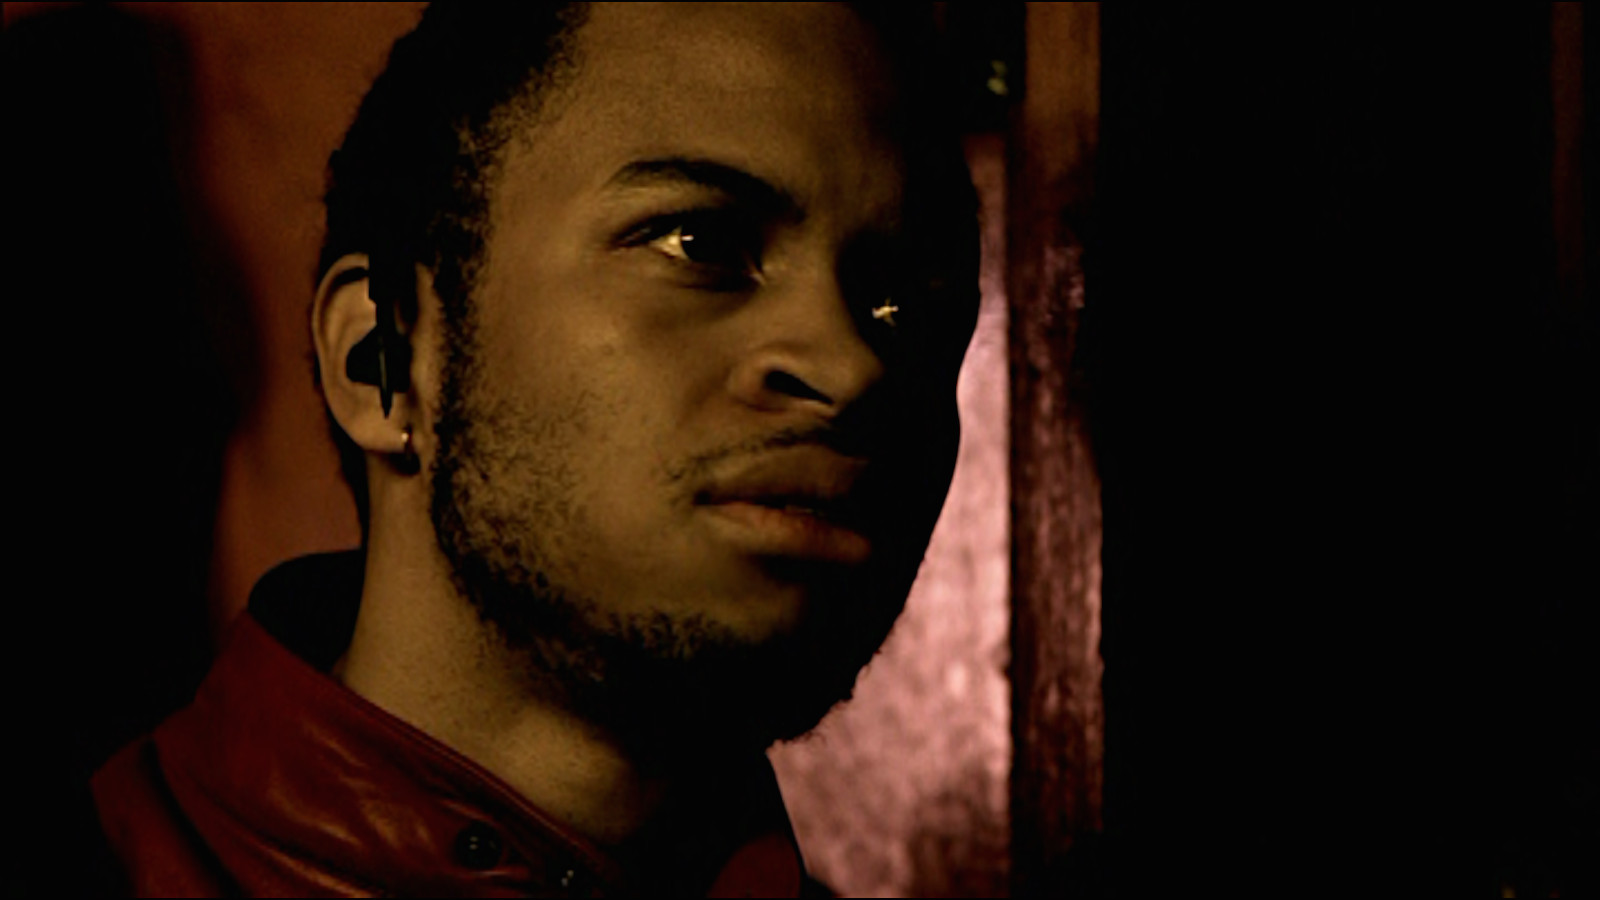 Eugene Byrd in One Point O (2004)